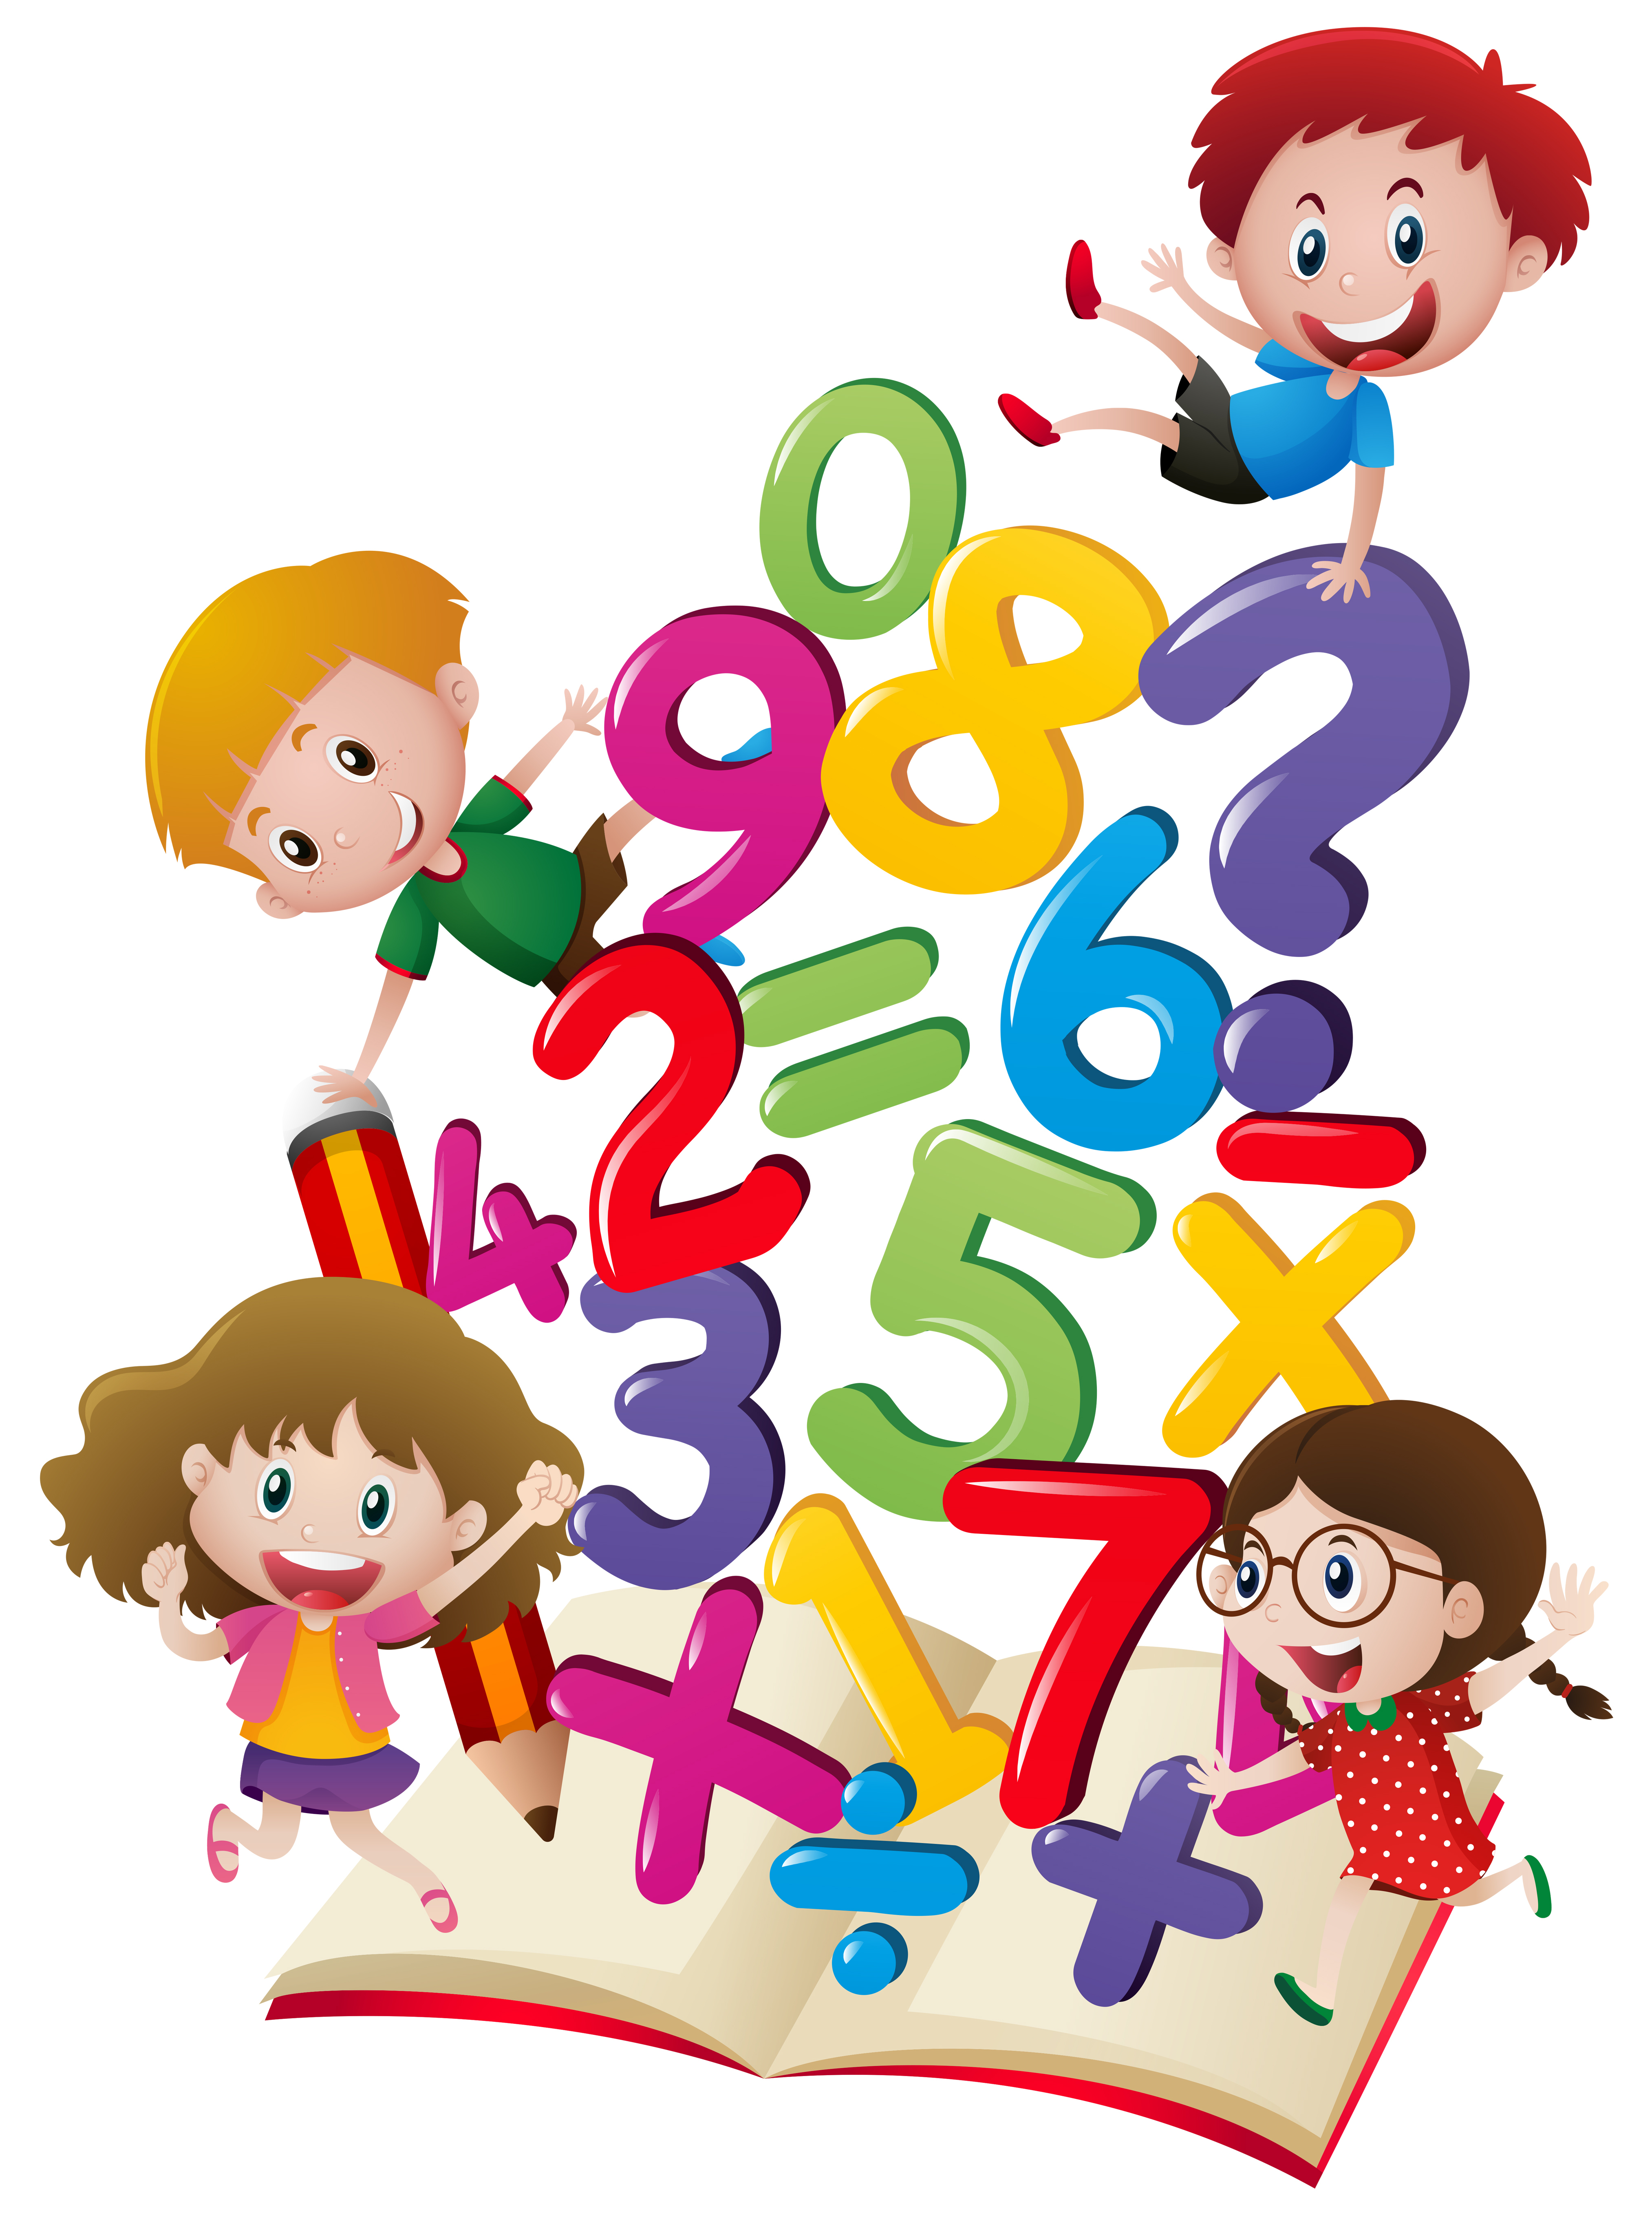 Motor Skills, Movement, and Math Performance Are Intertwined ...